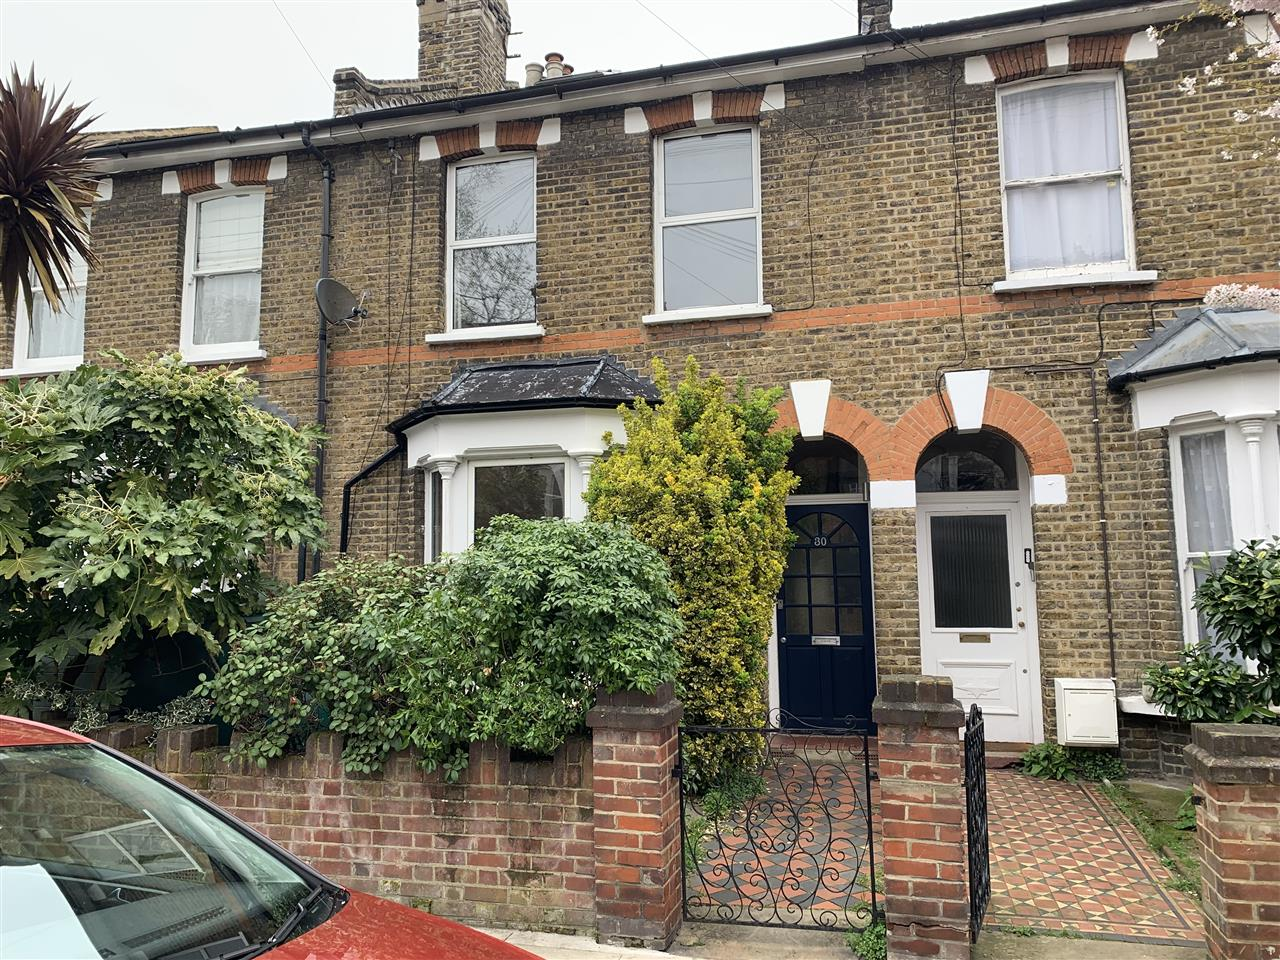 4 bed house to rent in Yerbury Road, London, N19